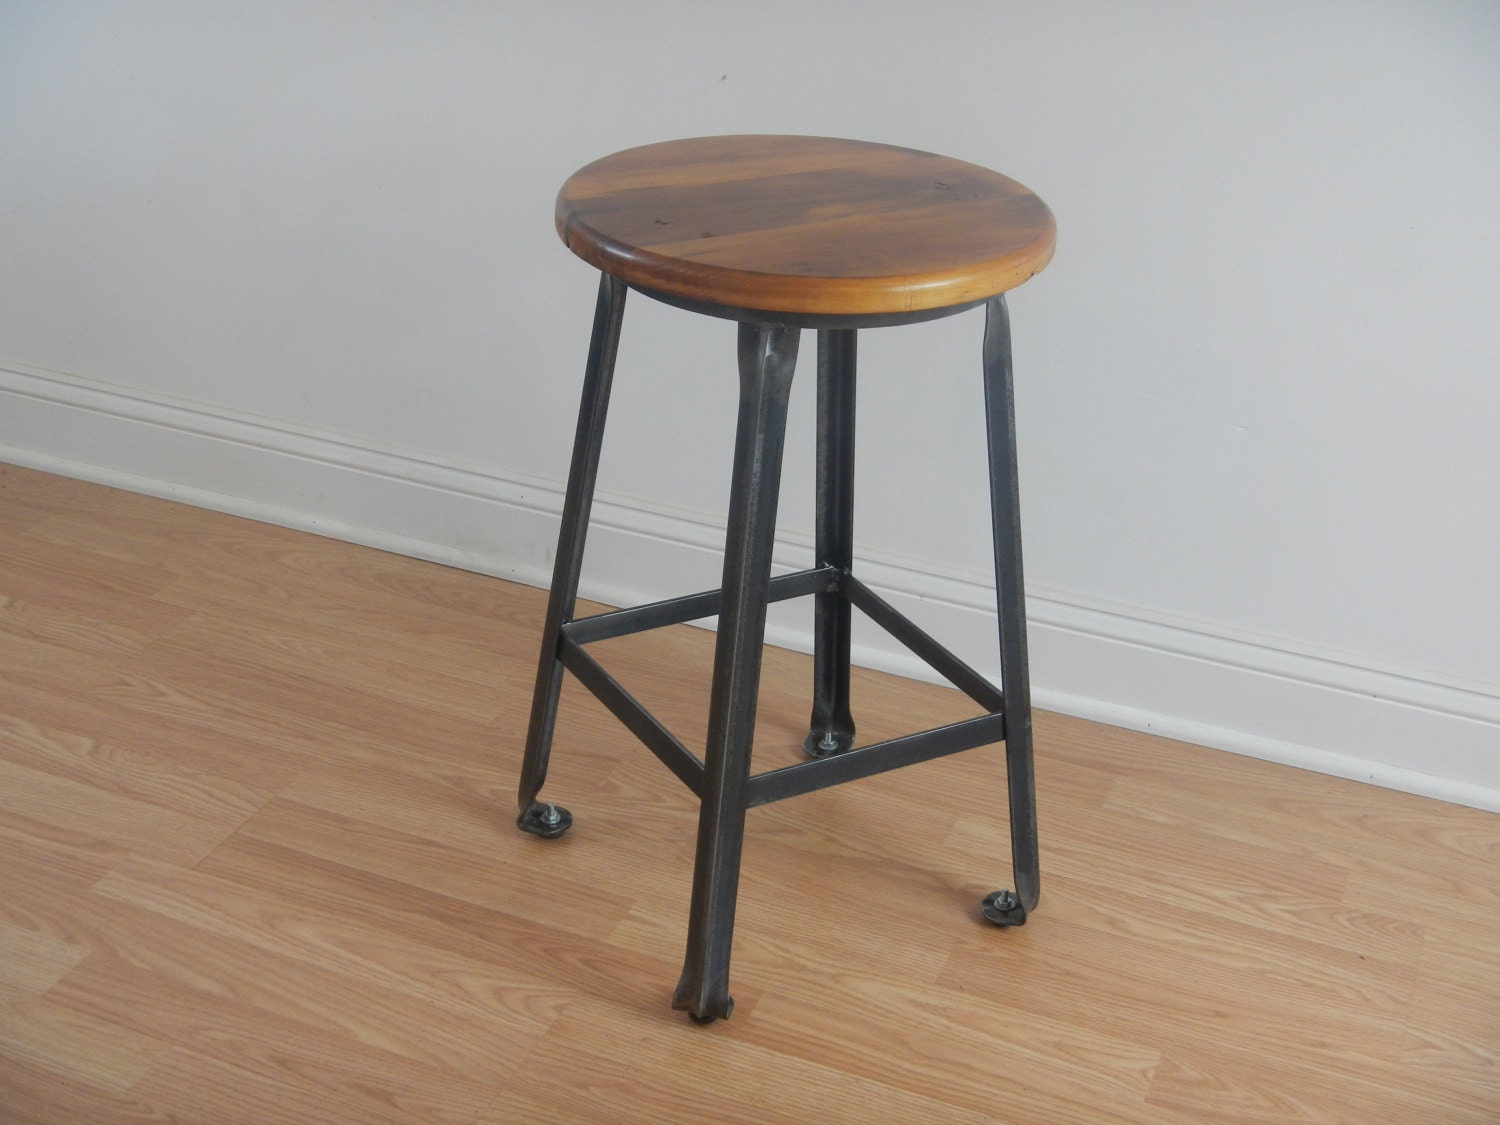 Industrial Style Counter Stool Bar Stool Kitchen Stool